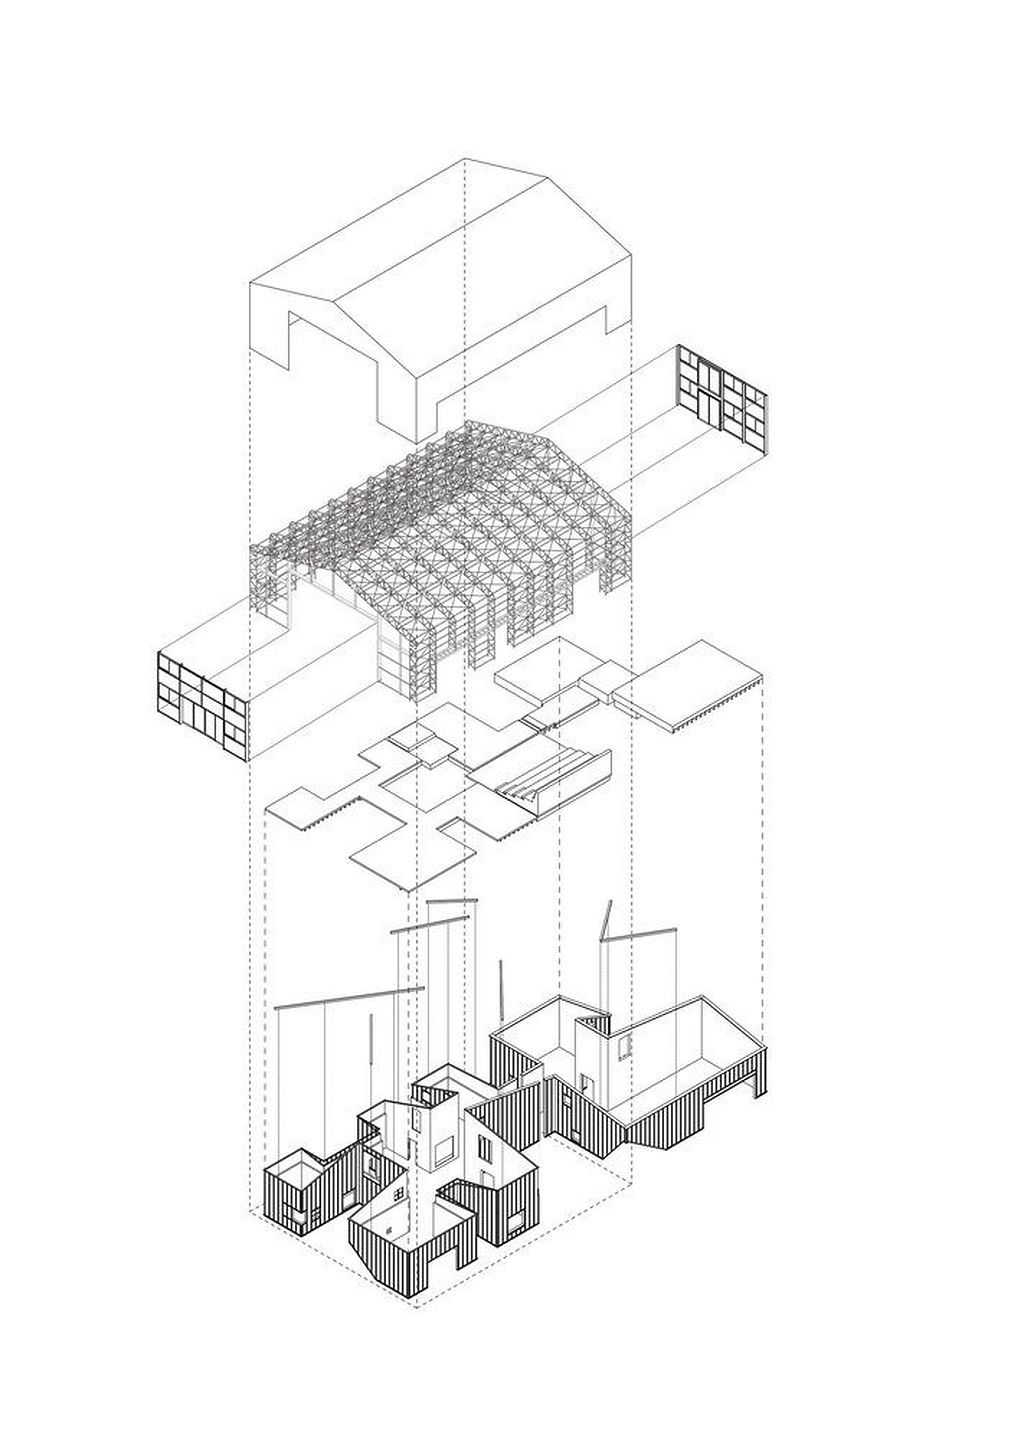 91 fantastic architecture drawing ideas architecture drawings